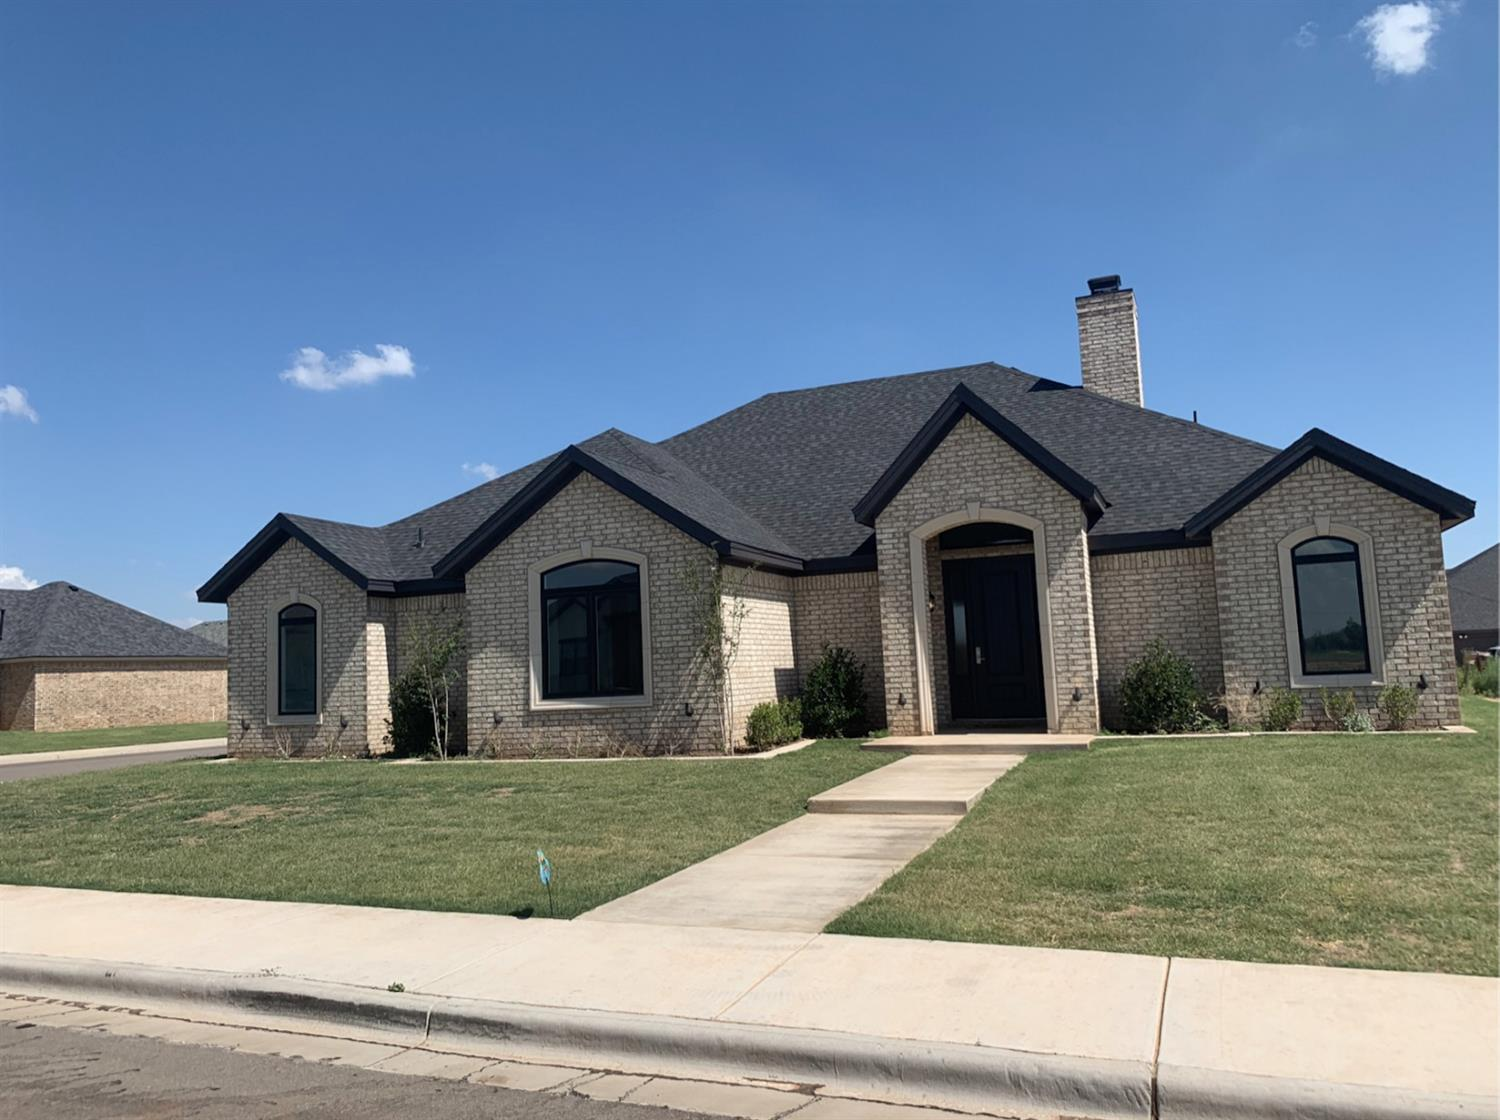 Back on the market!!! New construction in Brooke Heights is a must see! This open-concept home is complete with beautiful floors & countertops, fireplace & vaulted ceiling in the living room, and spacious bedrooms. You can also enjoy an isolated master suite including a large walk-in closet, LED make-up mirrors, air flow tub, and separate shower. The large covered patio includes a built-in grill and cooler which makes this space ideal for game days and entertaining. Call today to see this fantastic home in Cooper school district!